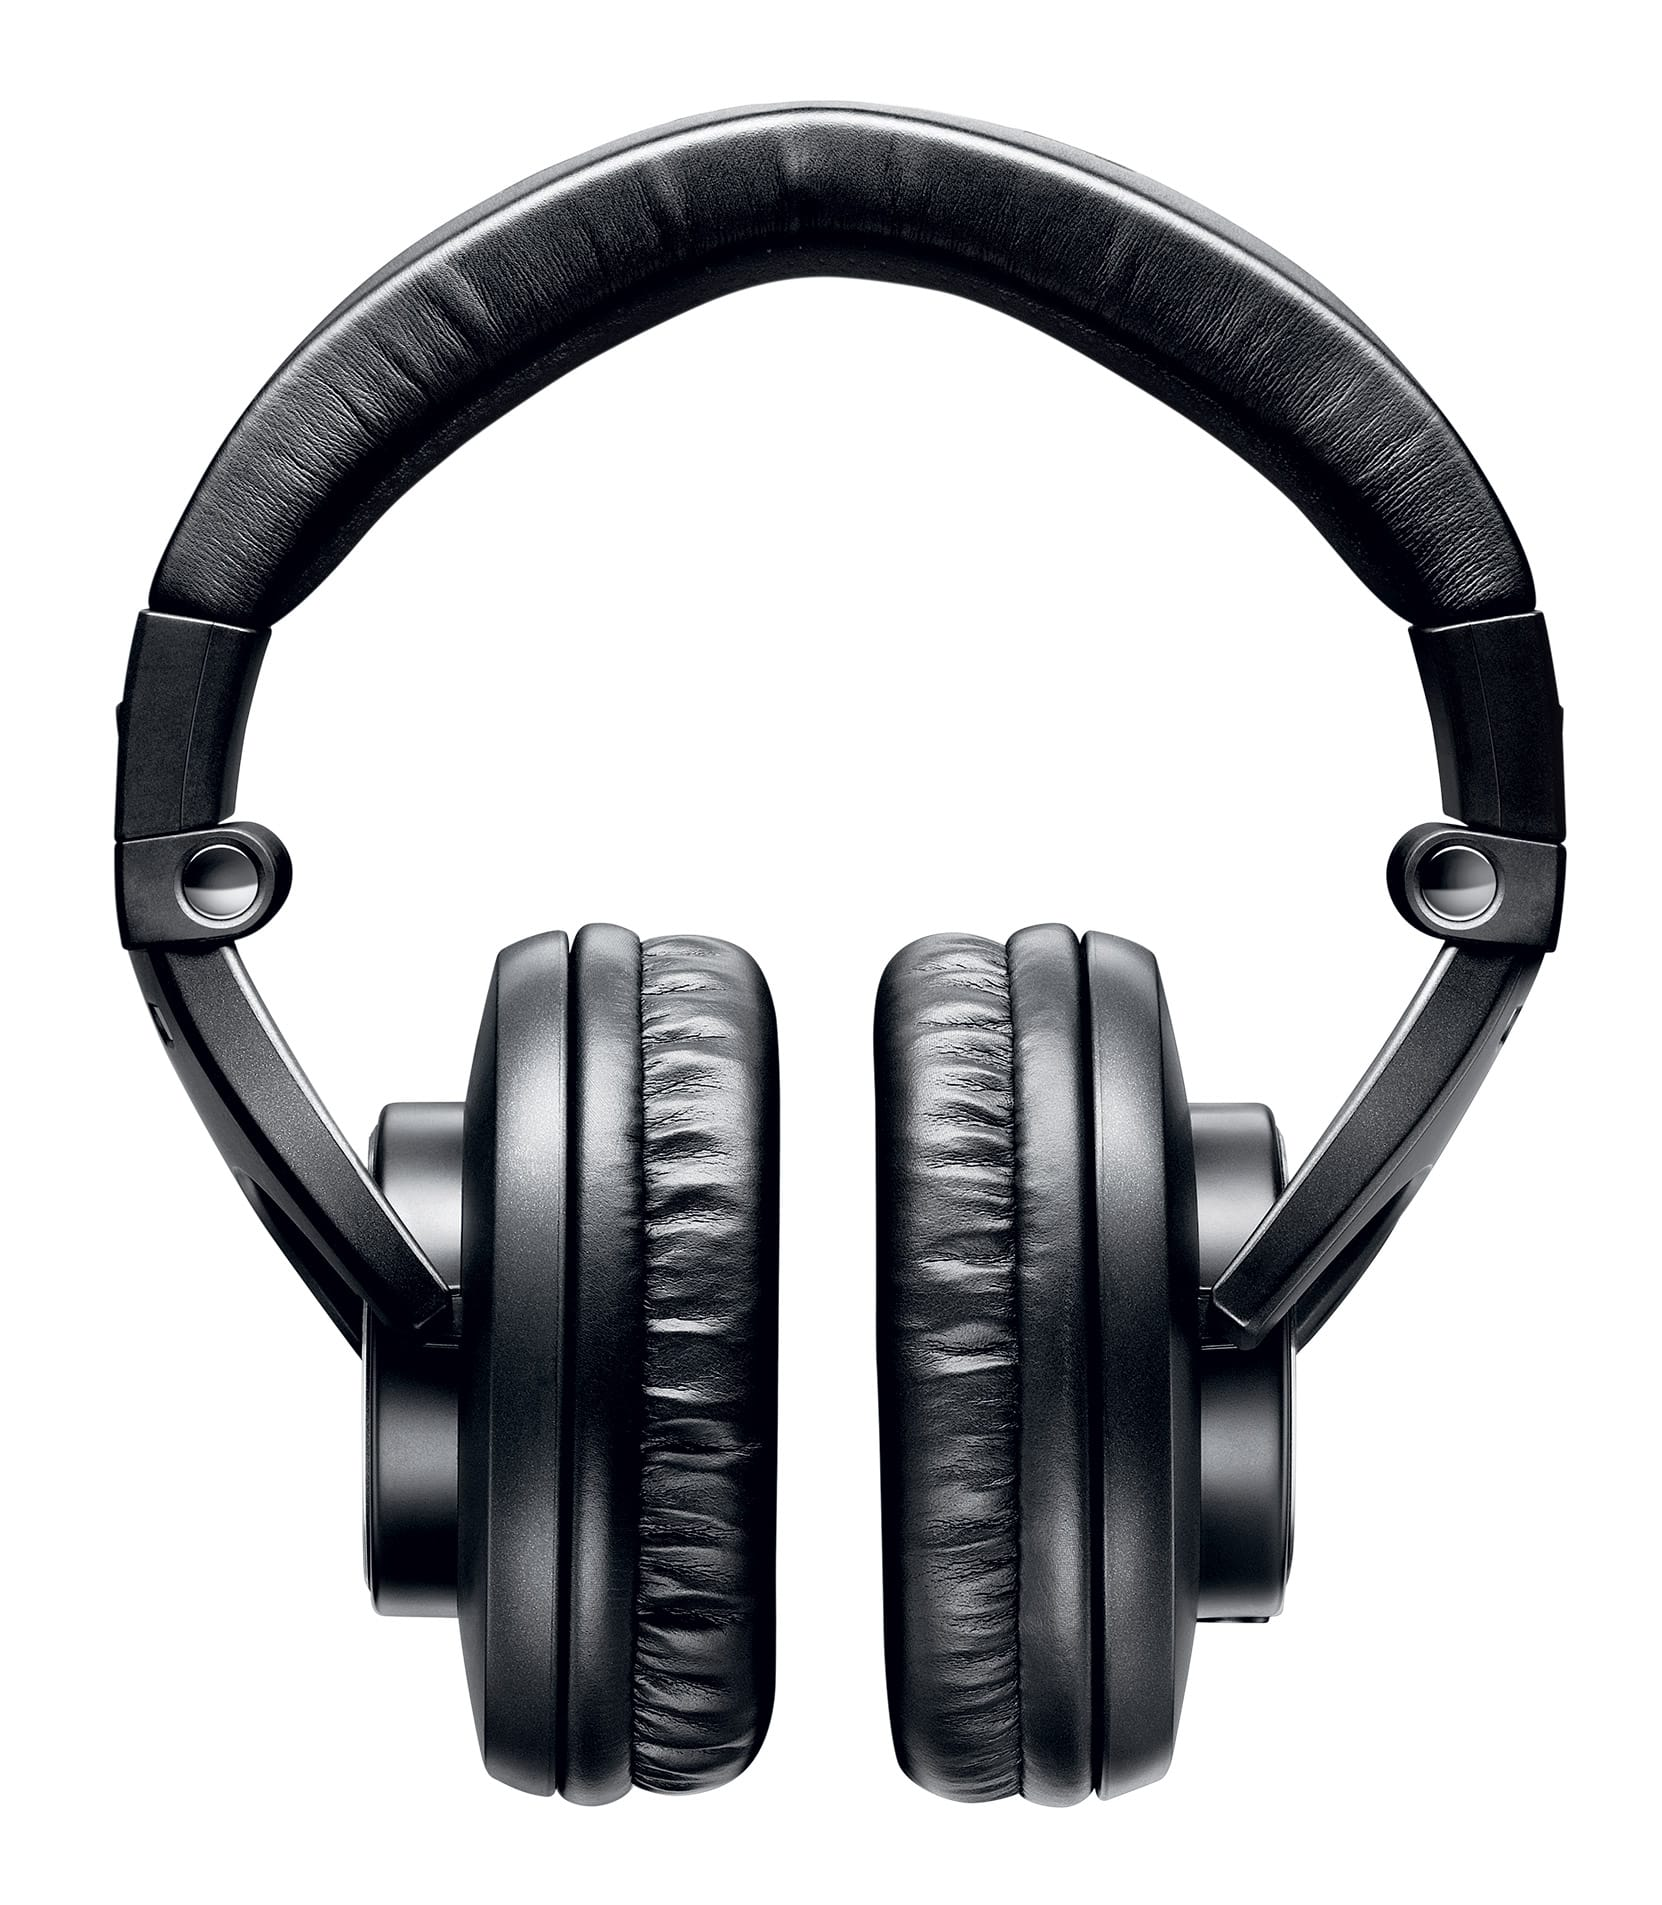 SRH840 E Professional Monitoring Headphones